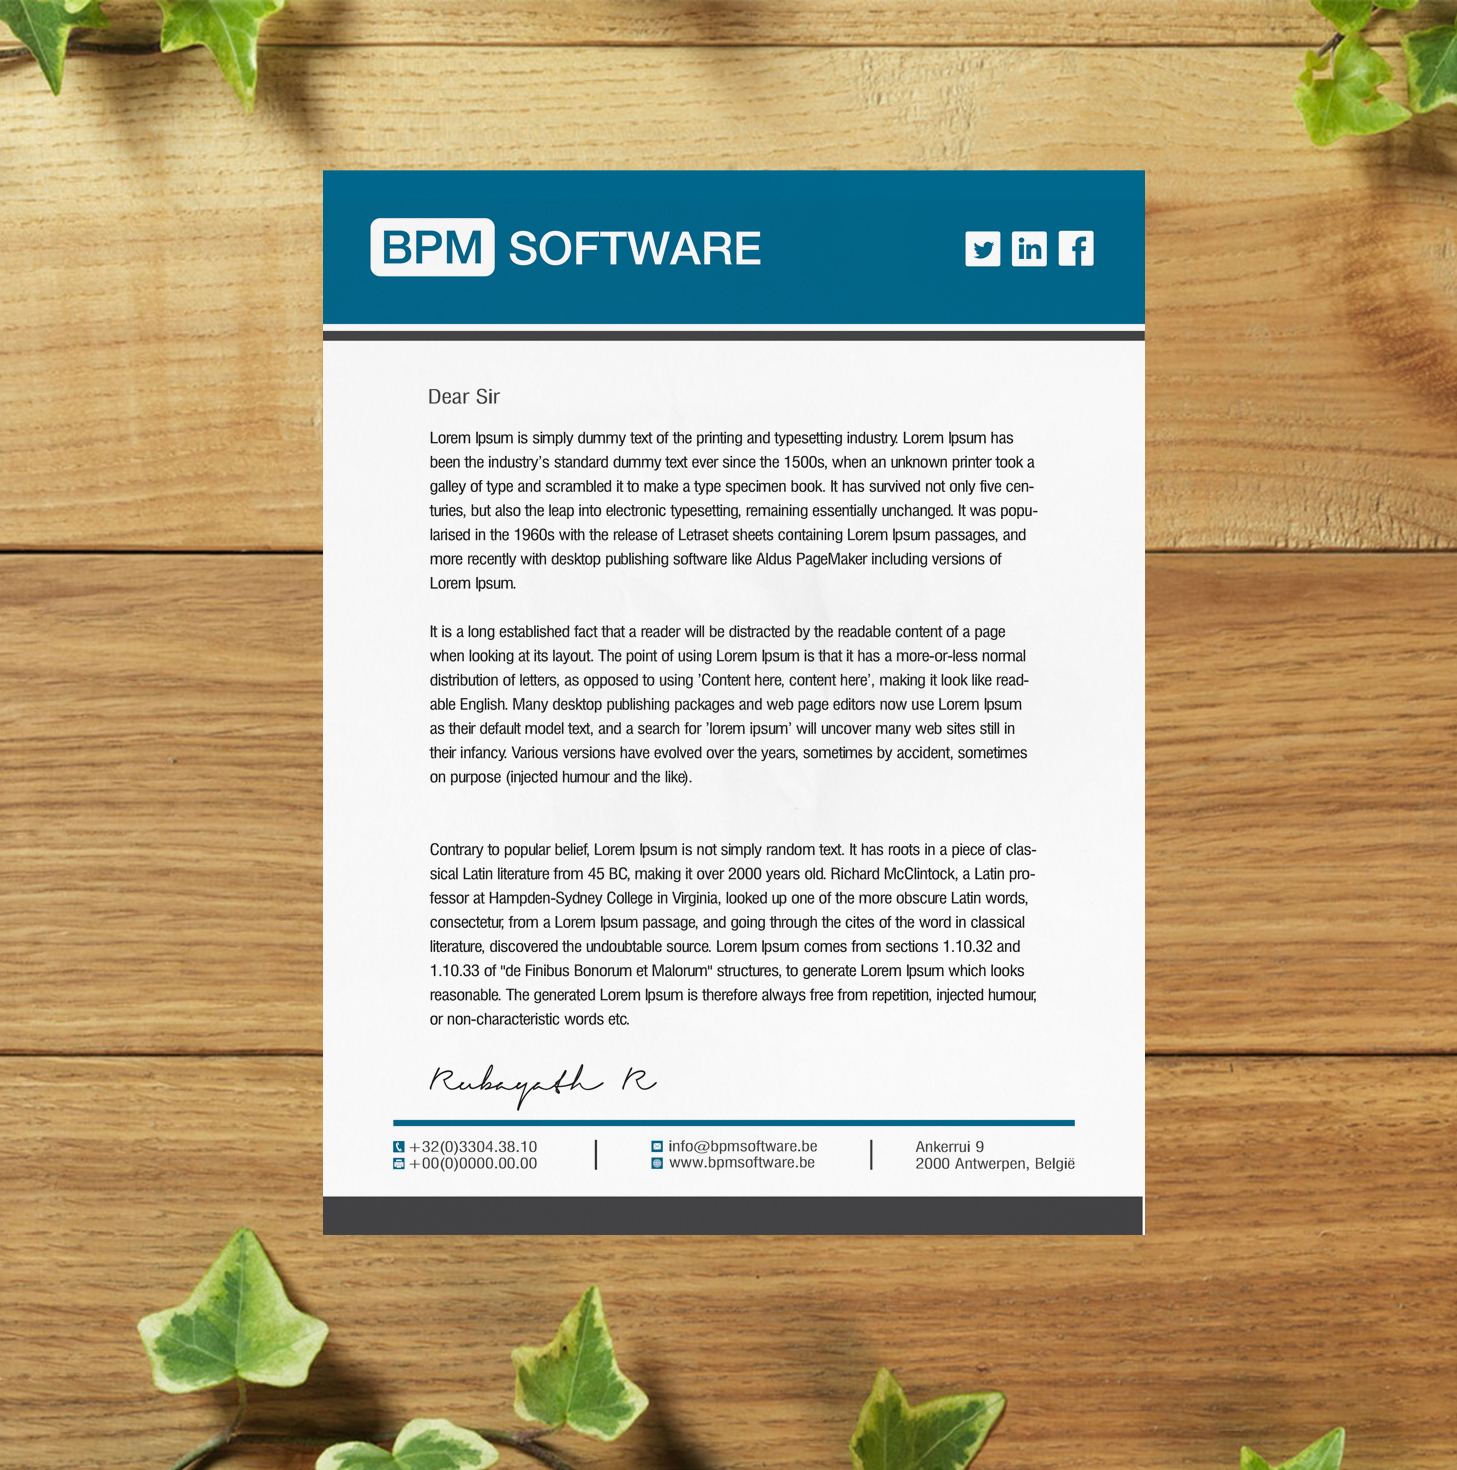 Elegant, Playful, Business Software Letterhead Design For. Cover Letter Examples 2018 Accounting. Como Hacer Curriculum Vitae Pdf. Letter Template Address. Cover Letter For Retail Learnership. Resume Building Programs. Letter For Resignation From A Job. Lebenslauf Template Europass. How To Write Cover Letter Introduction